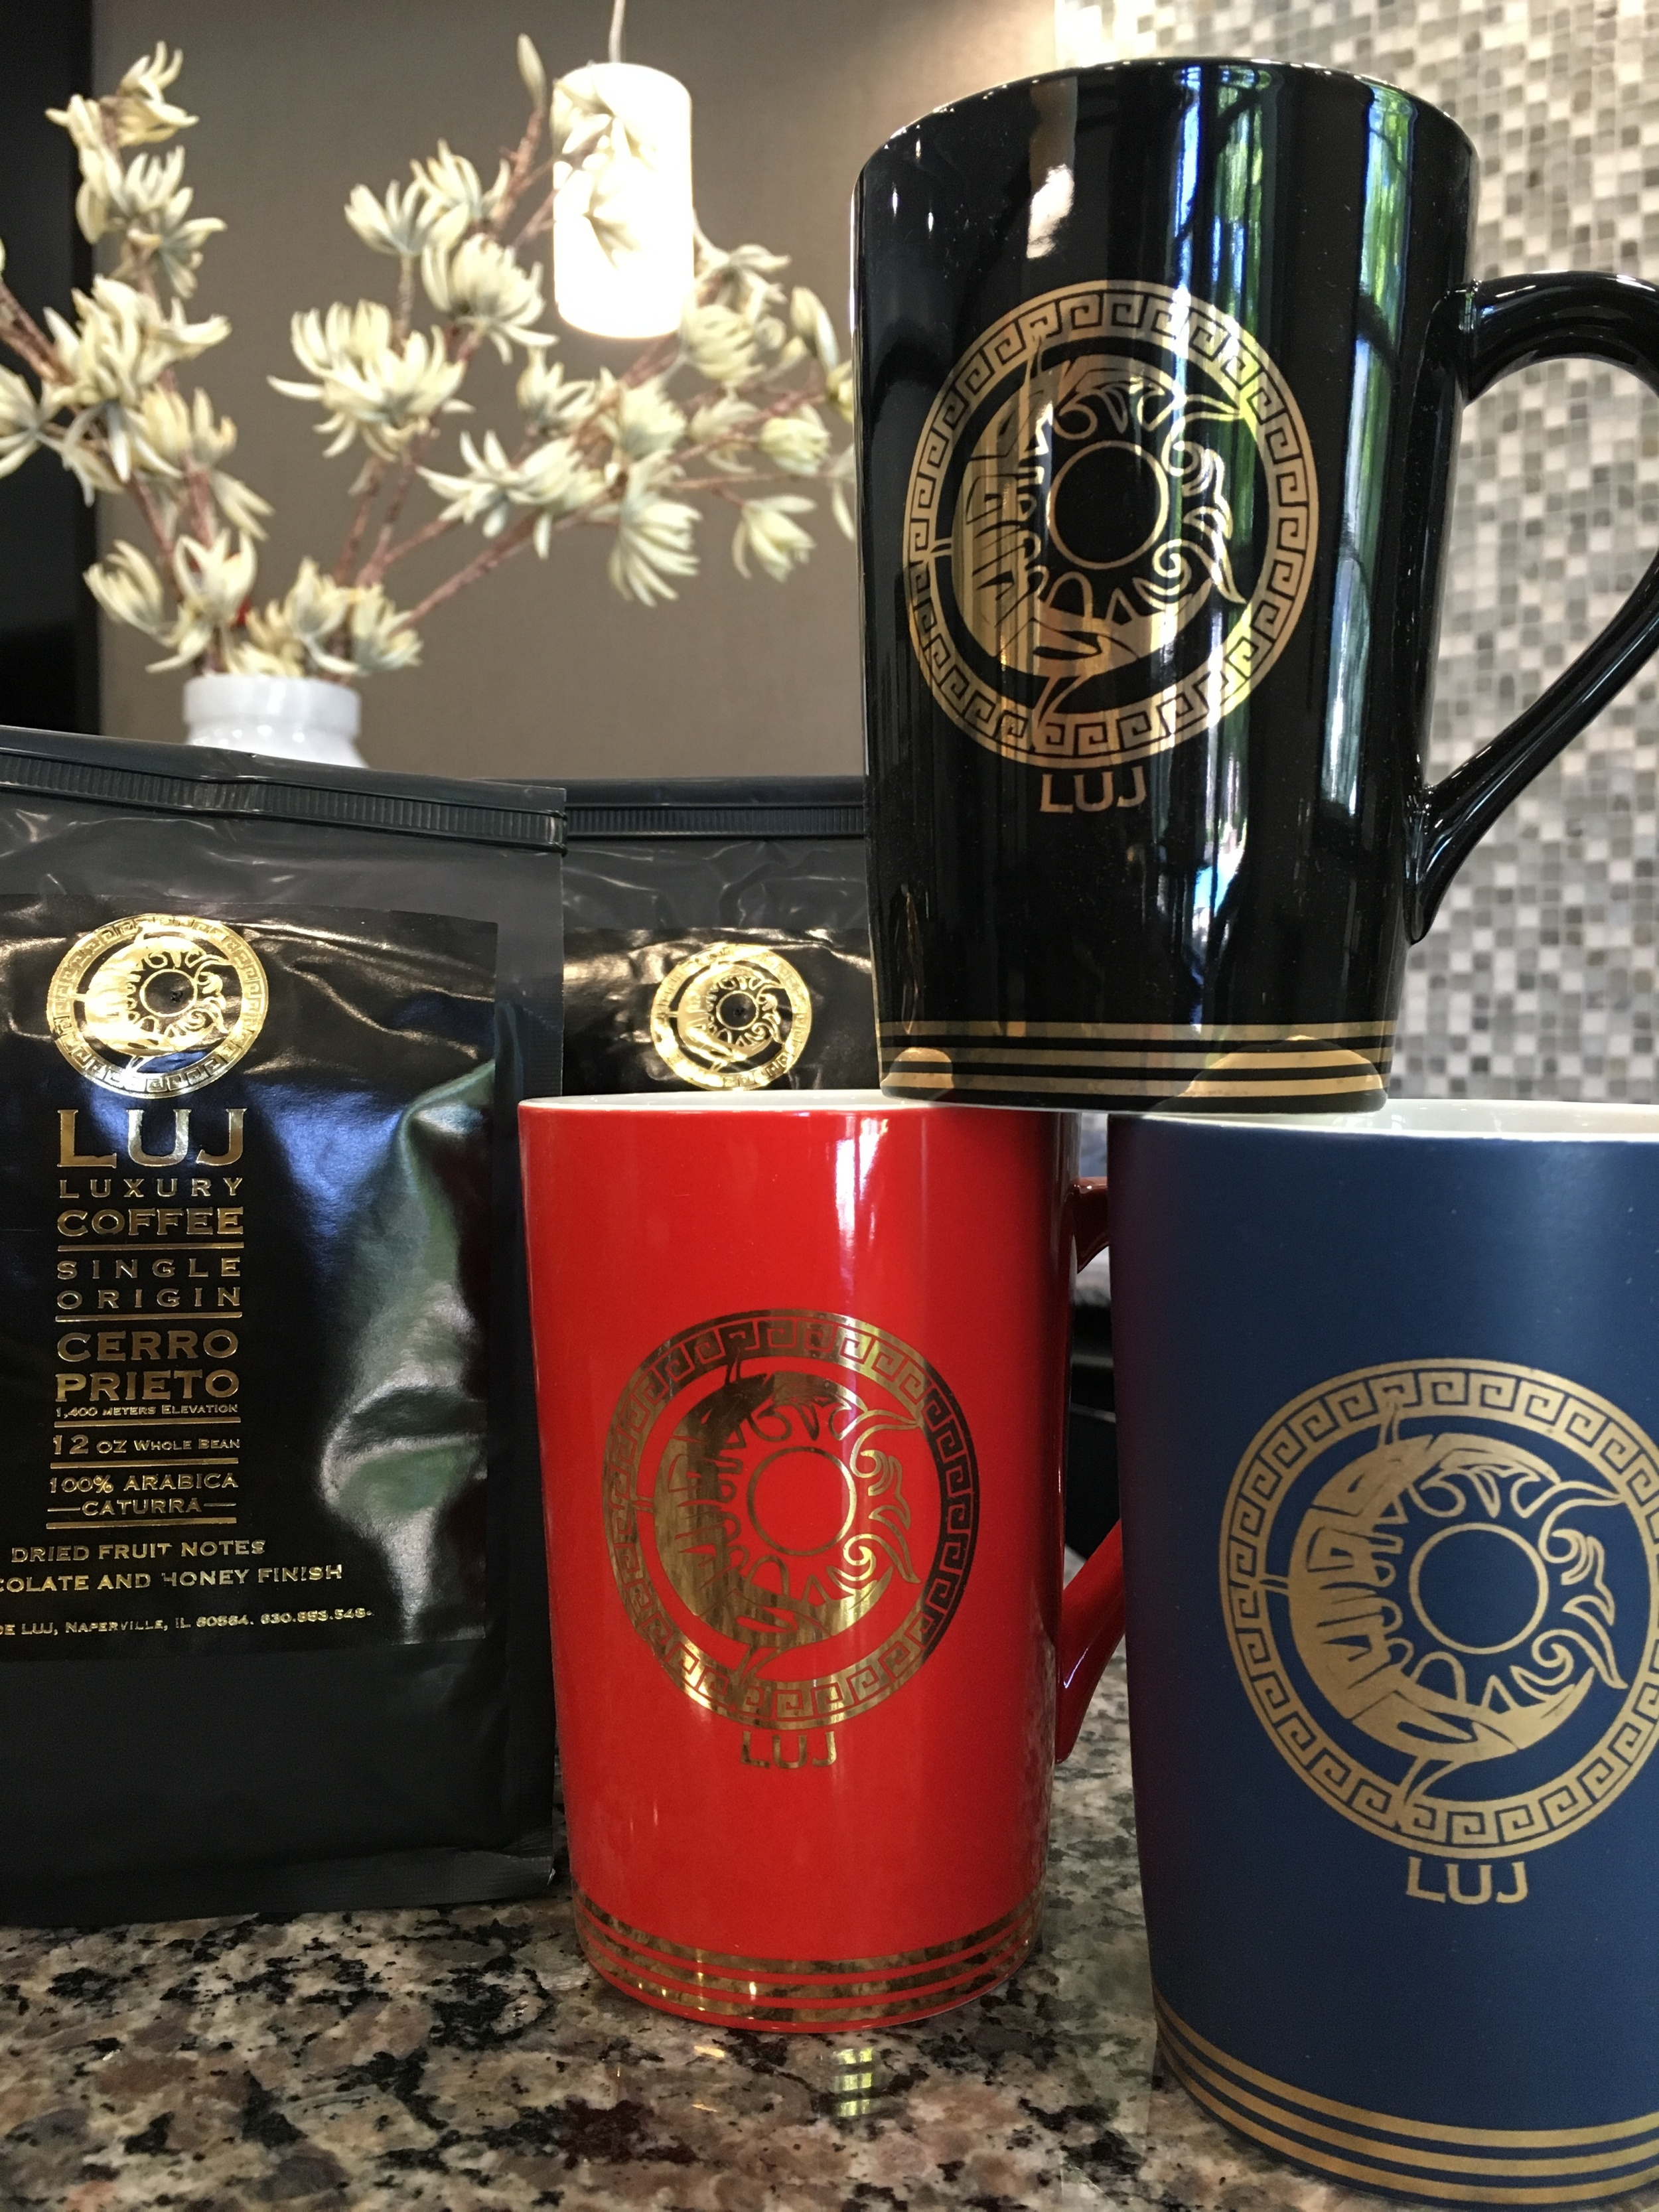 LUJ COFFEE MUGS iN BLACK (GLOSSY), RED (GLOSSY),WHITE (GLOSSY and BLUE (MATTE)